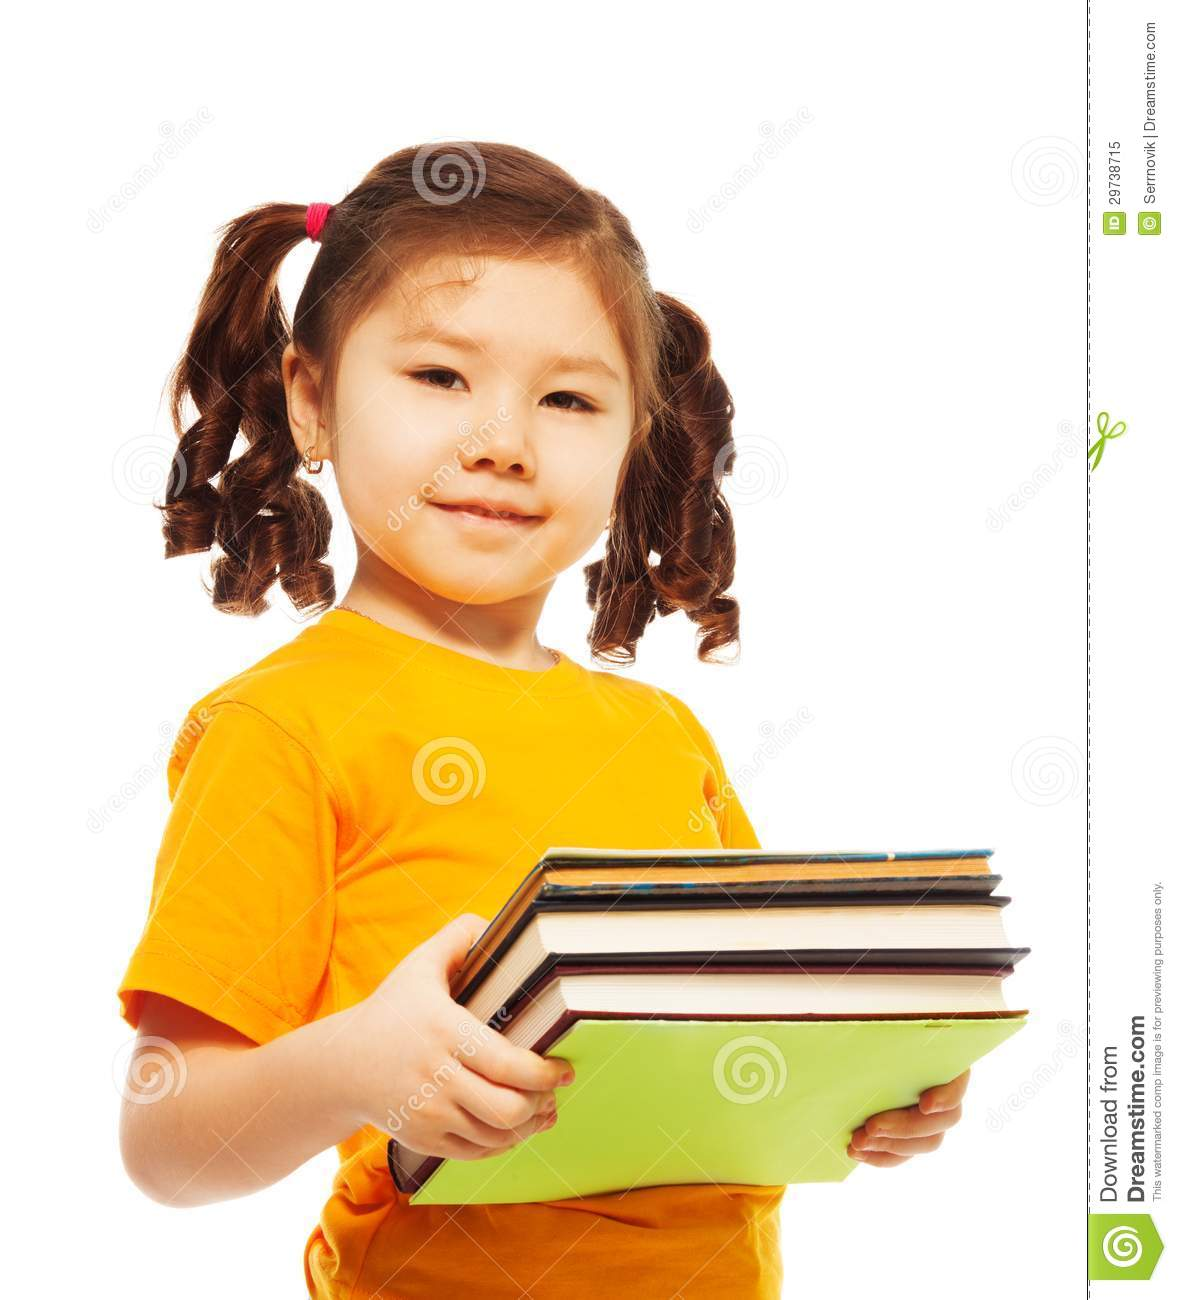 Clever School Girl: Clever Kid With Books Royalty Free Stock Photo